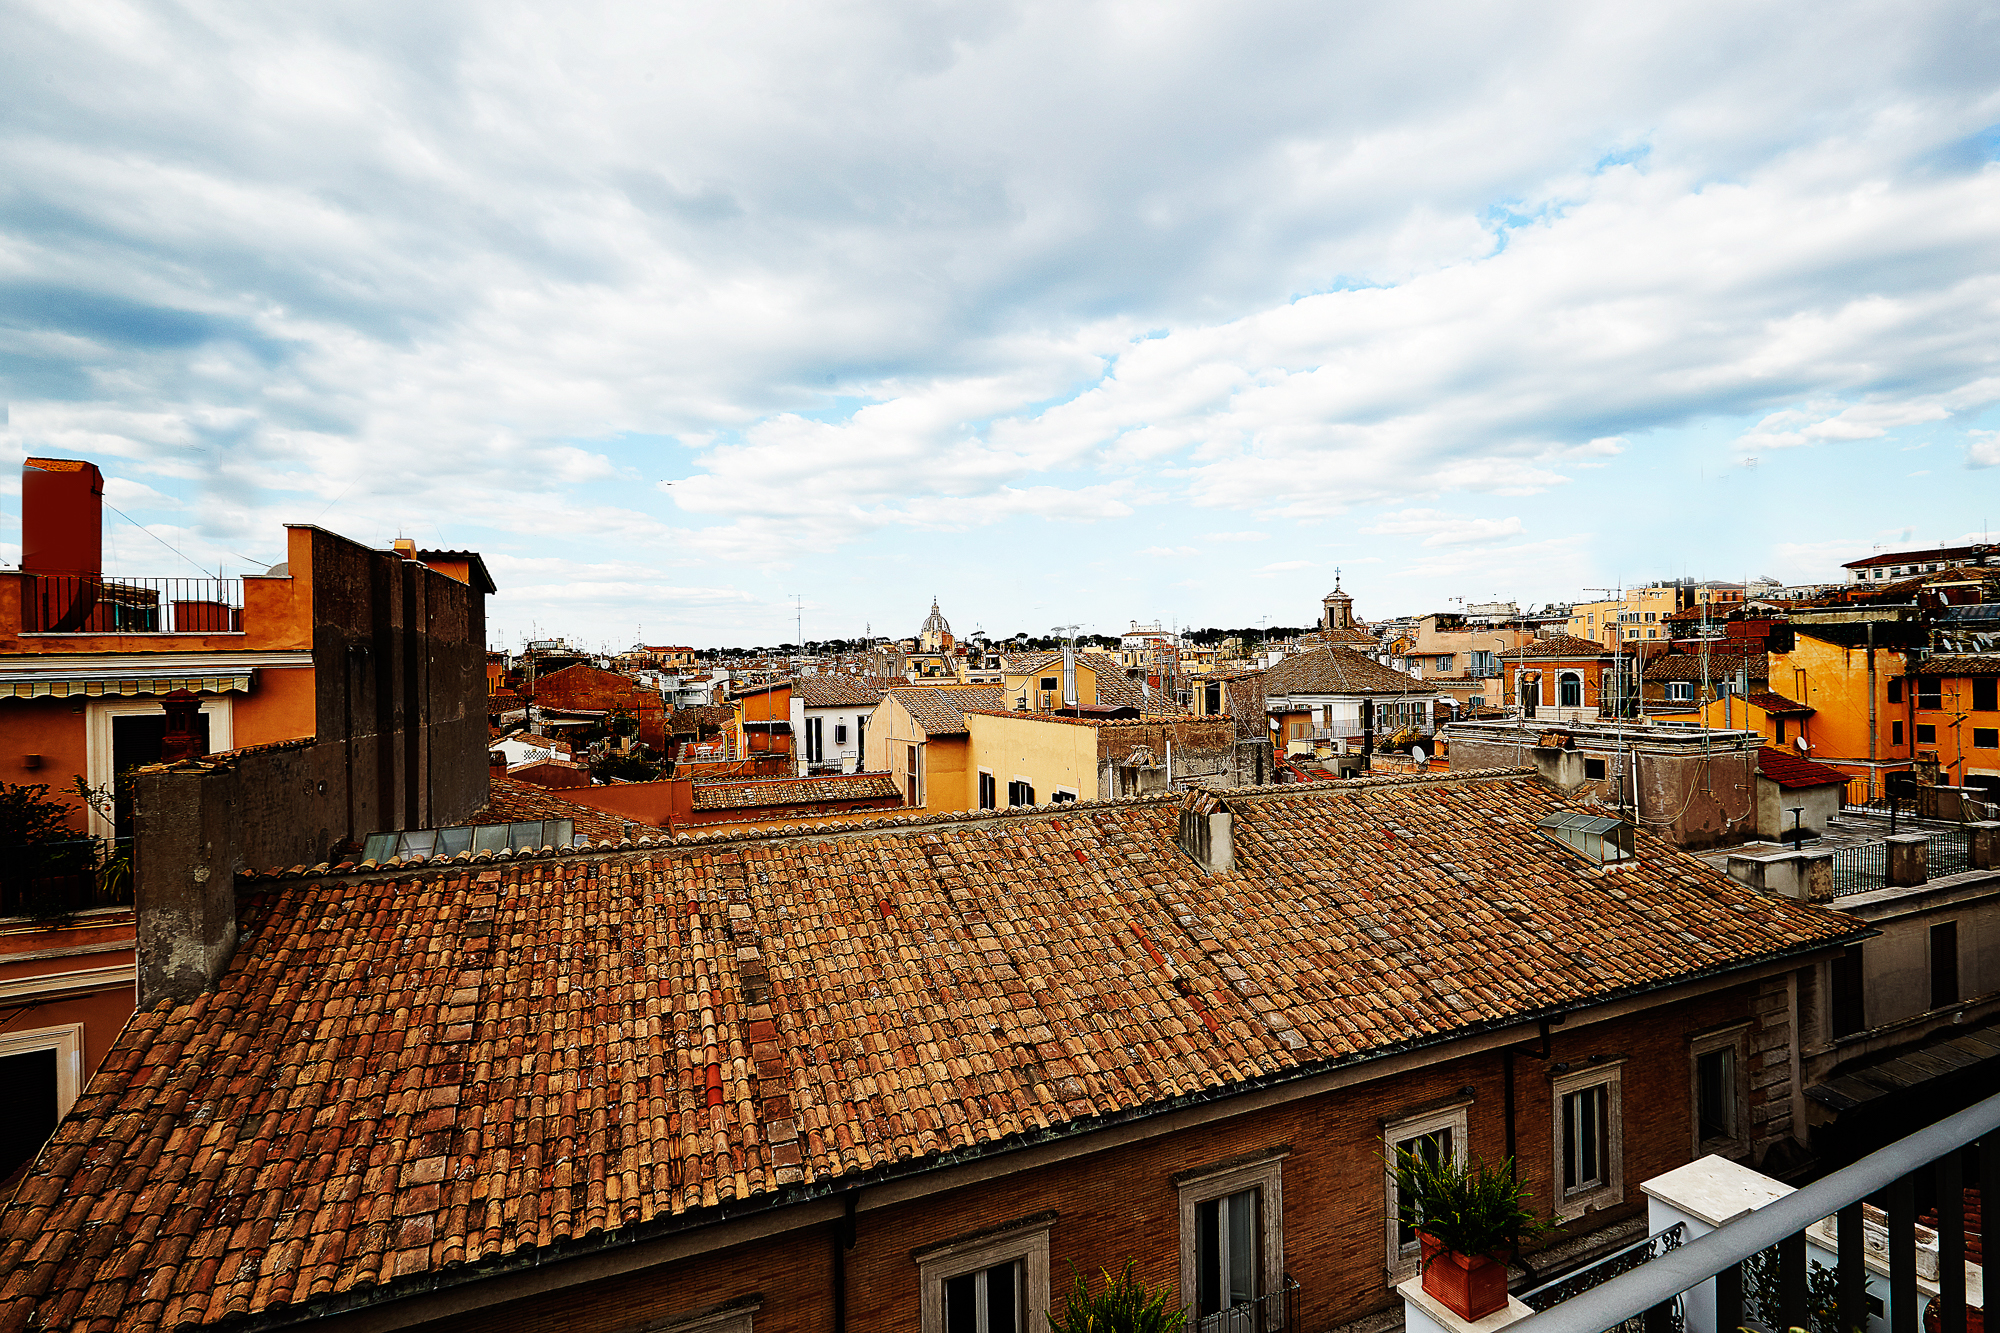 The view from the Palazzo delle Pietre in Rome.